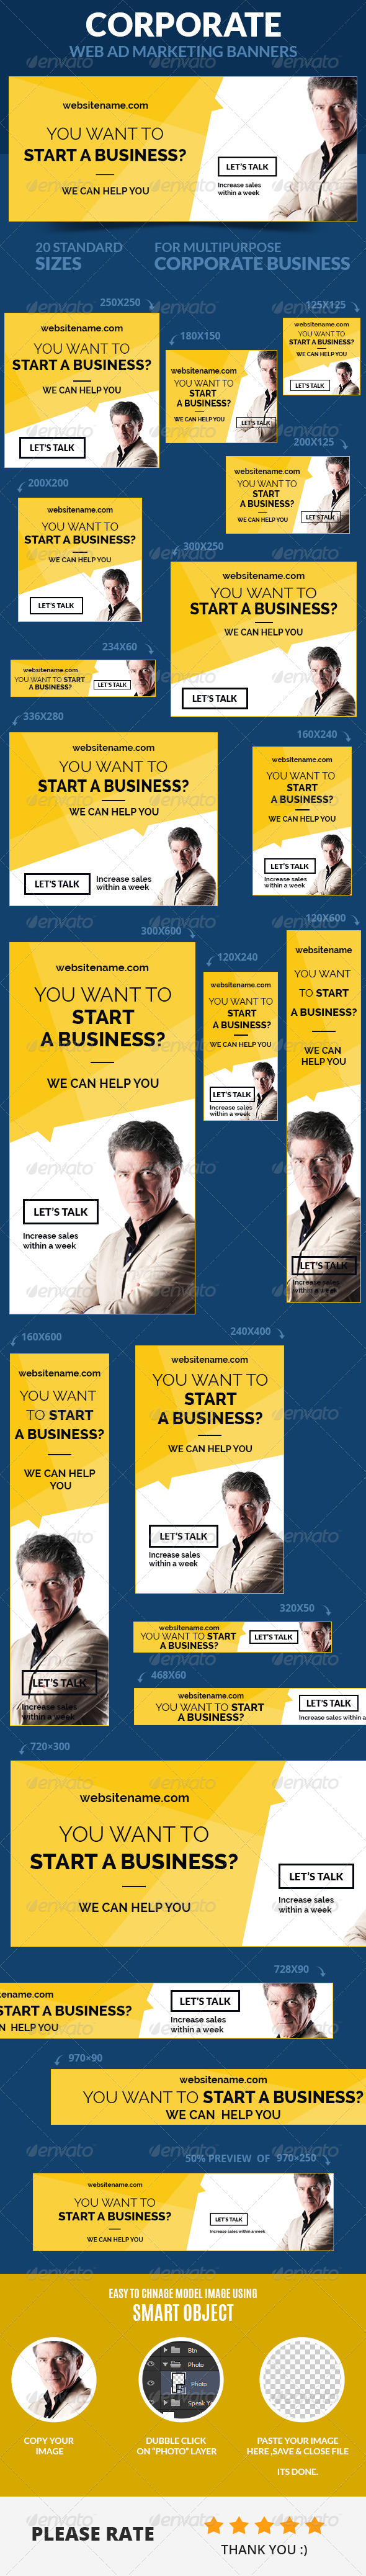 Corporate Web Ad Marketing Banners - Banners & Ads Web Elements